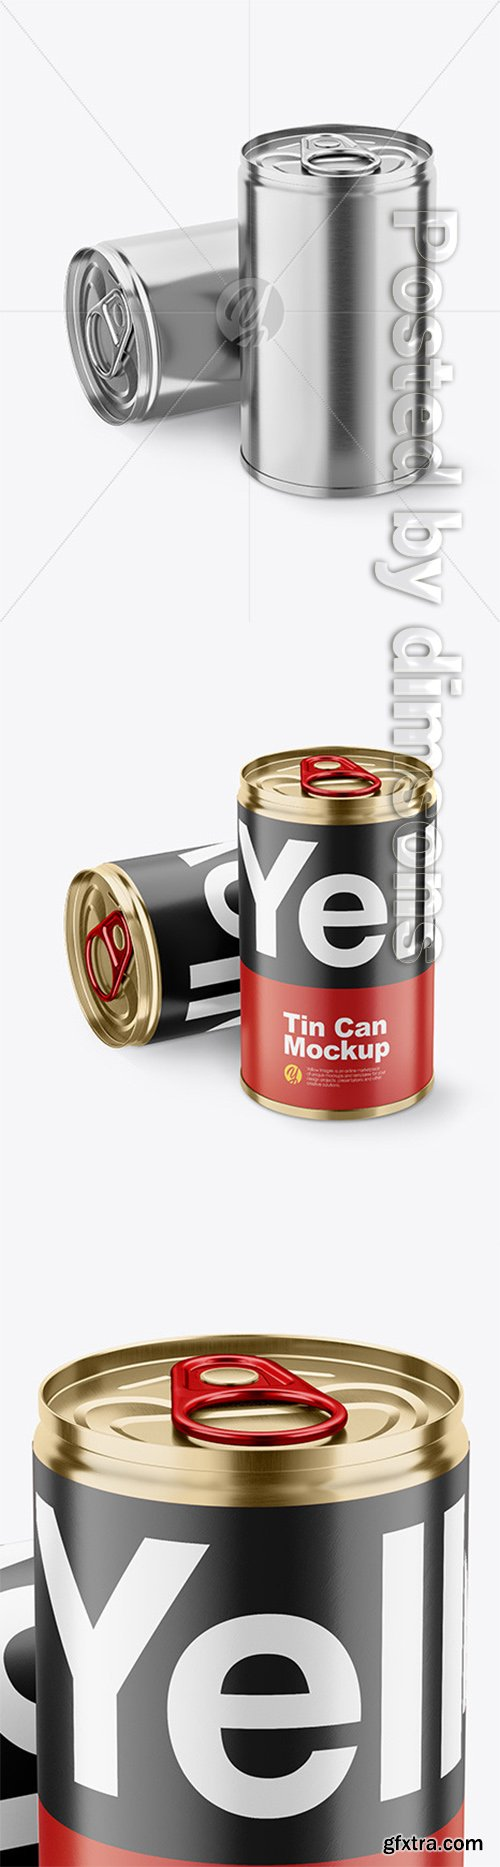 Two Tin Cans w/ Pull Tab Mockup 49297